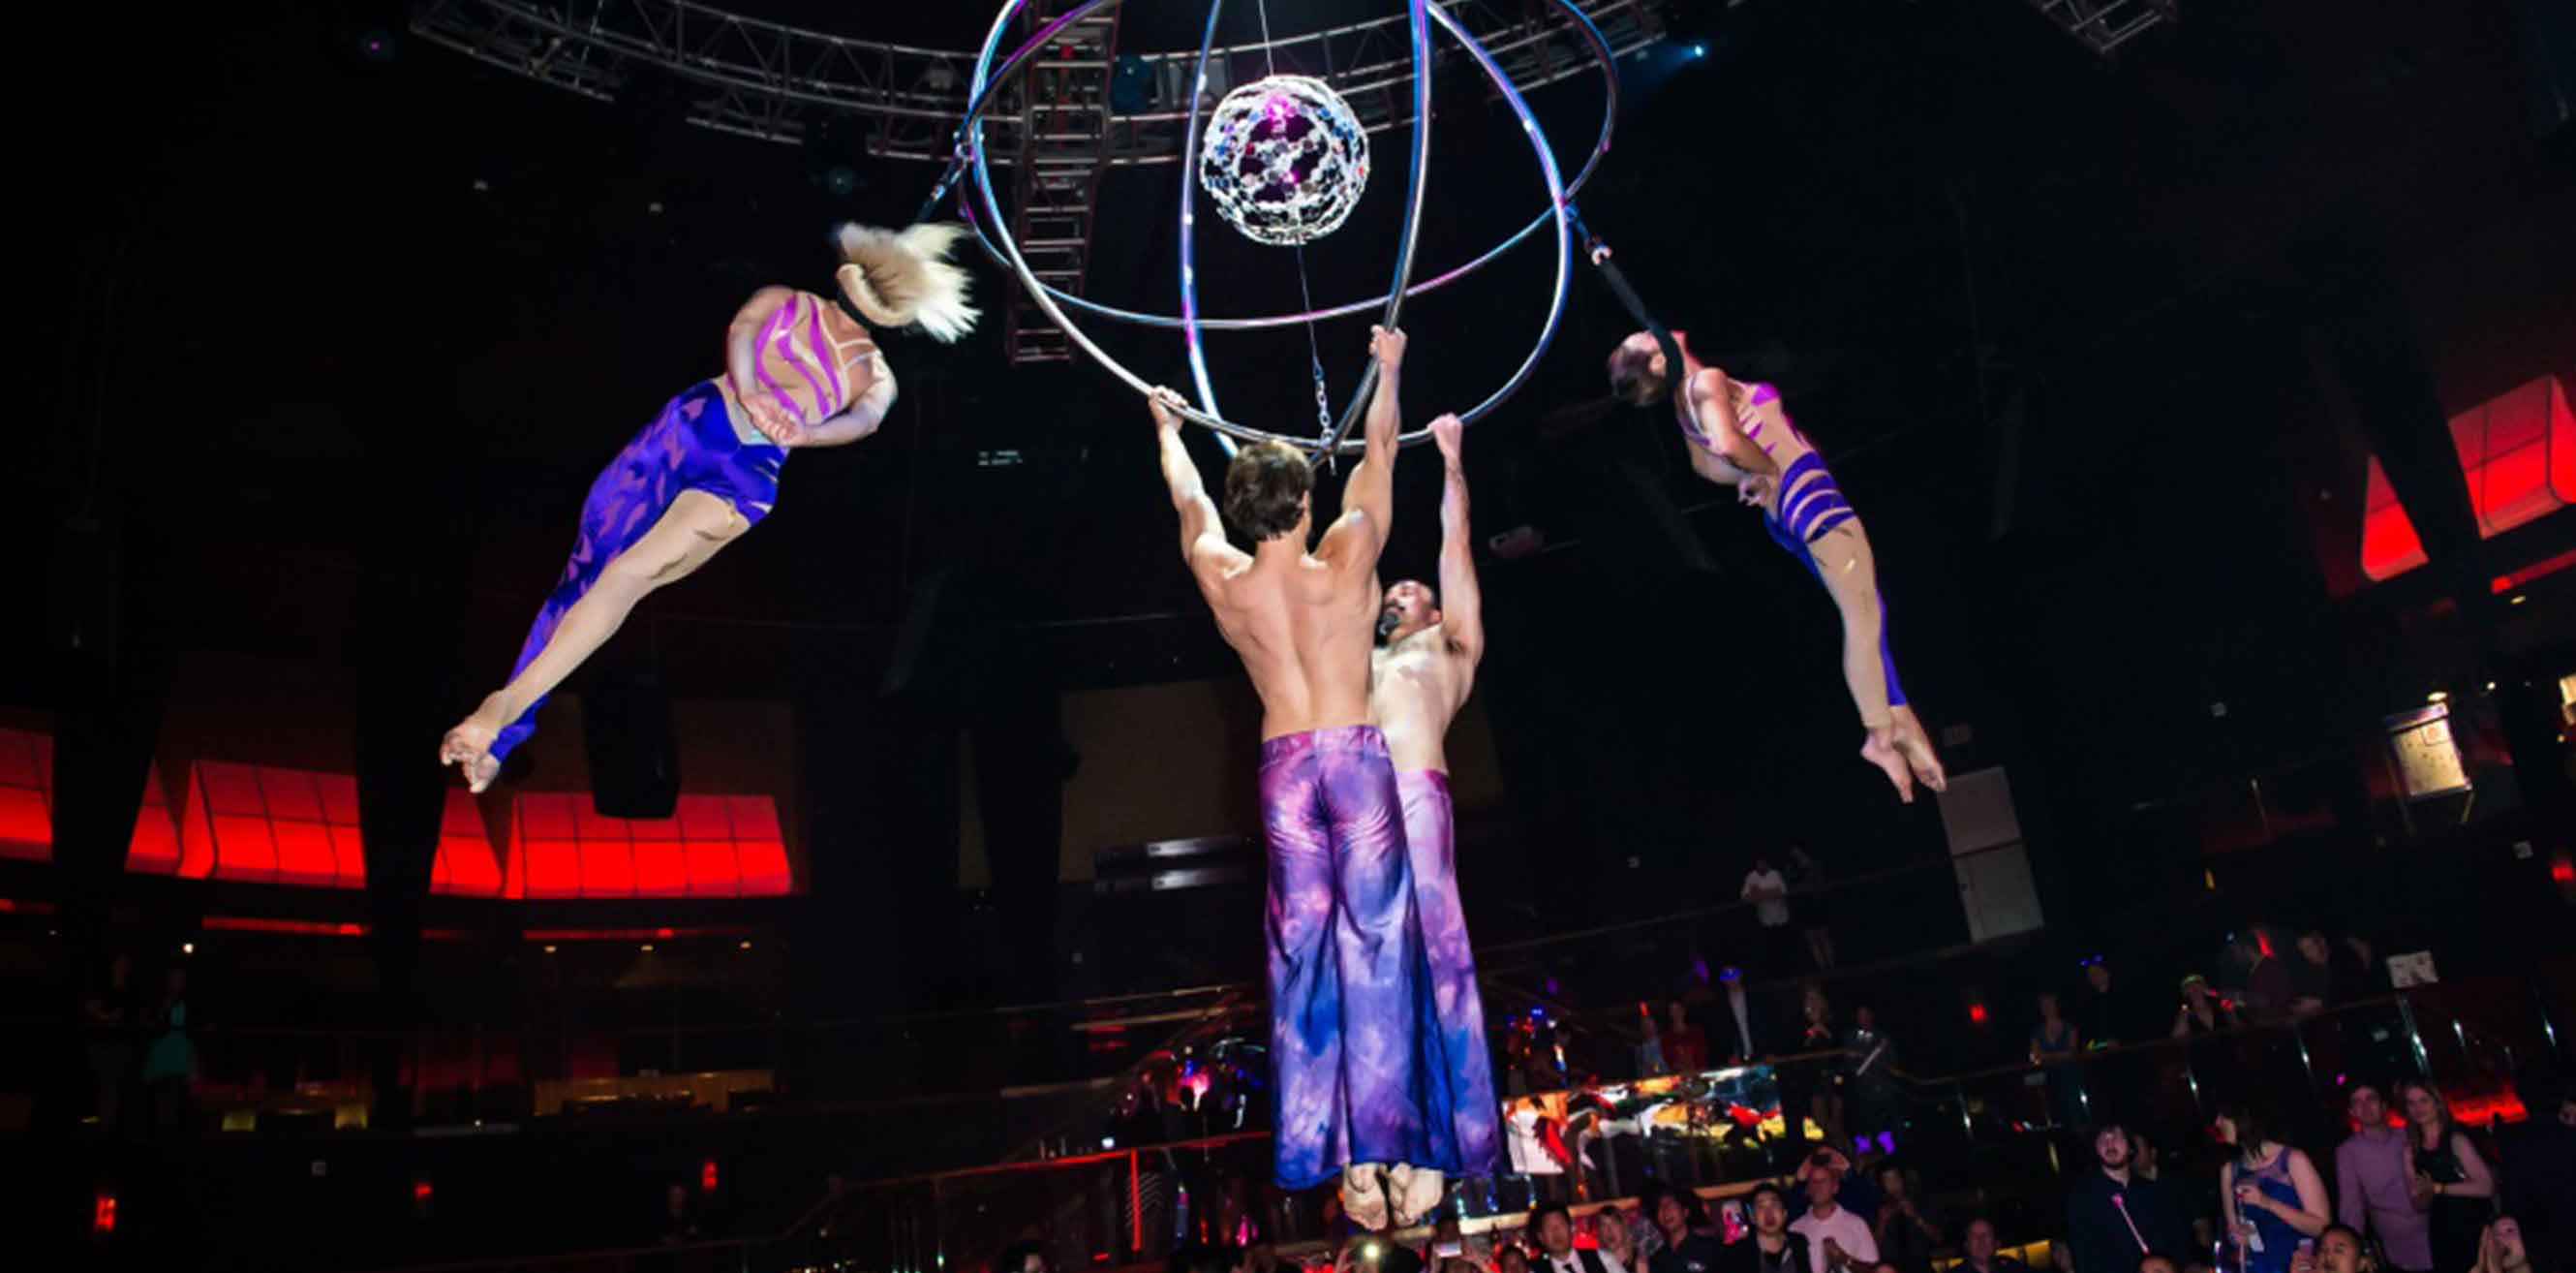 Acrobats hanging from a suspended sphere